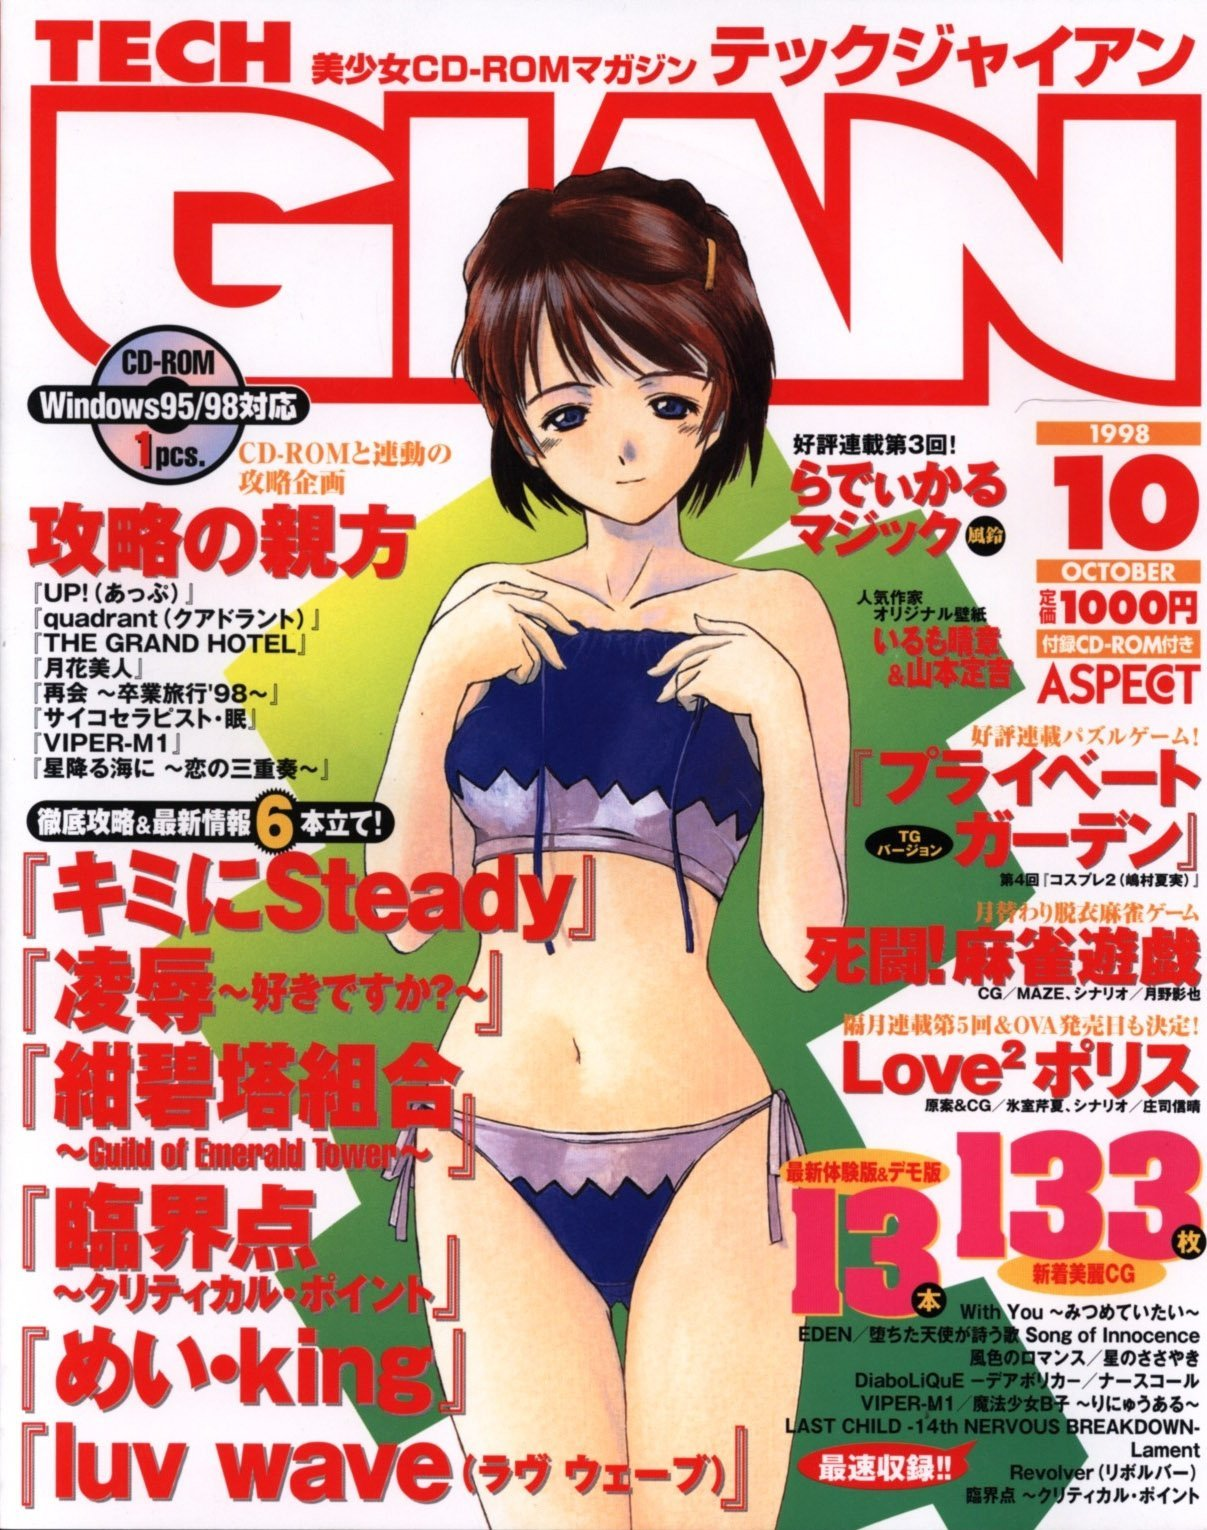 Tech Gian Issue 024 (October 1998)